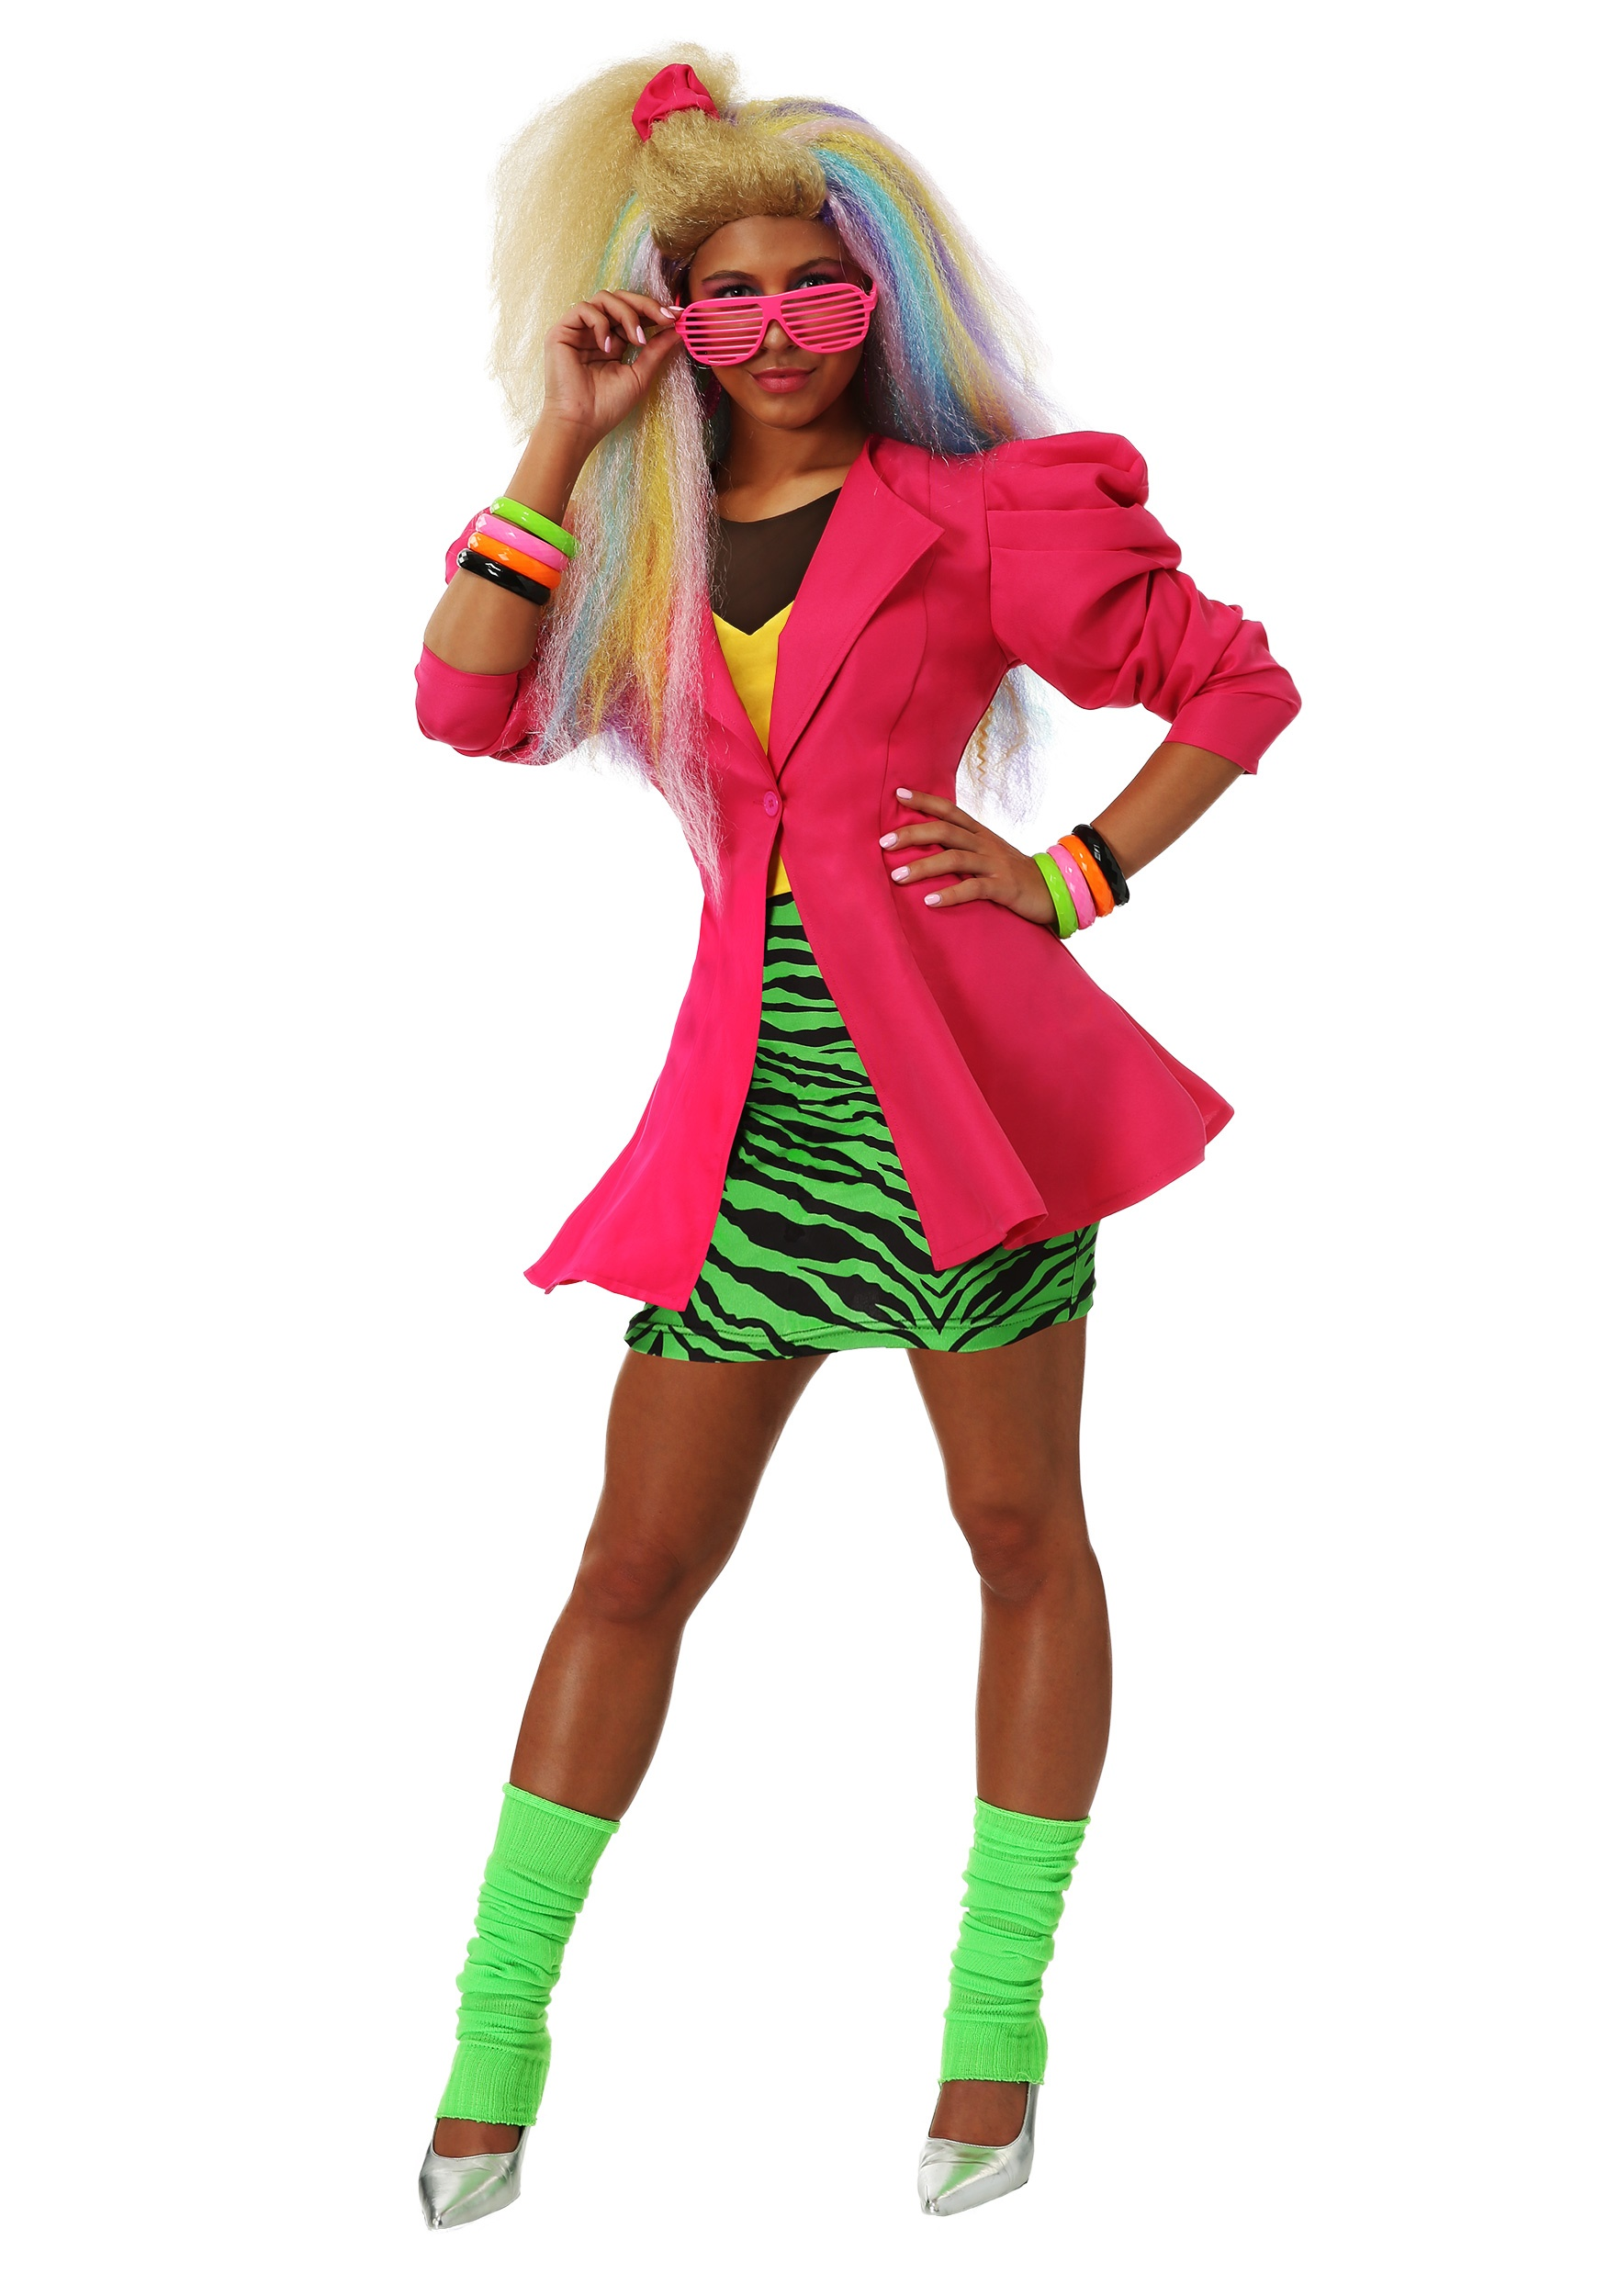 80s Costumes - Kids and Adults 80s Outfits - HalloweenCostumes.com